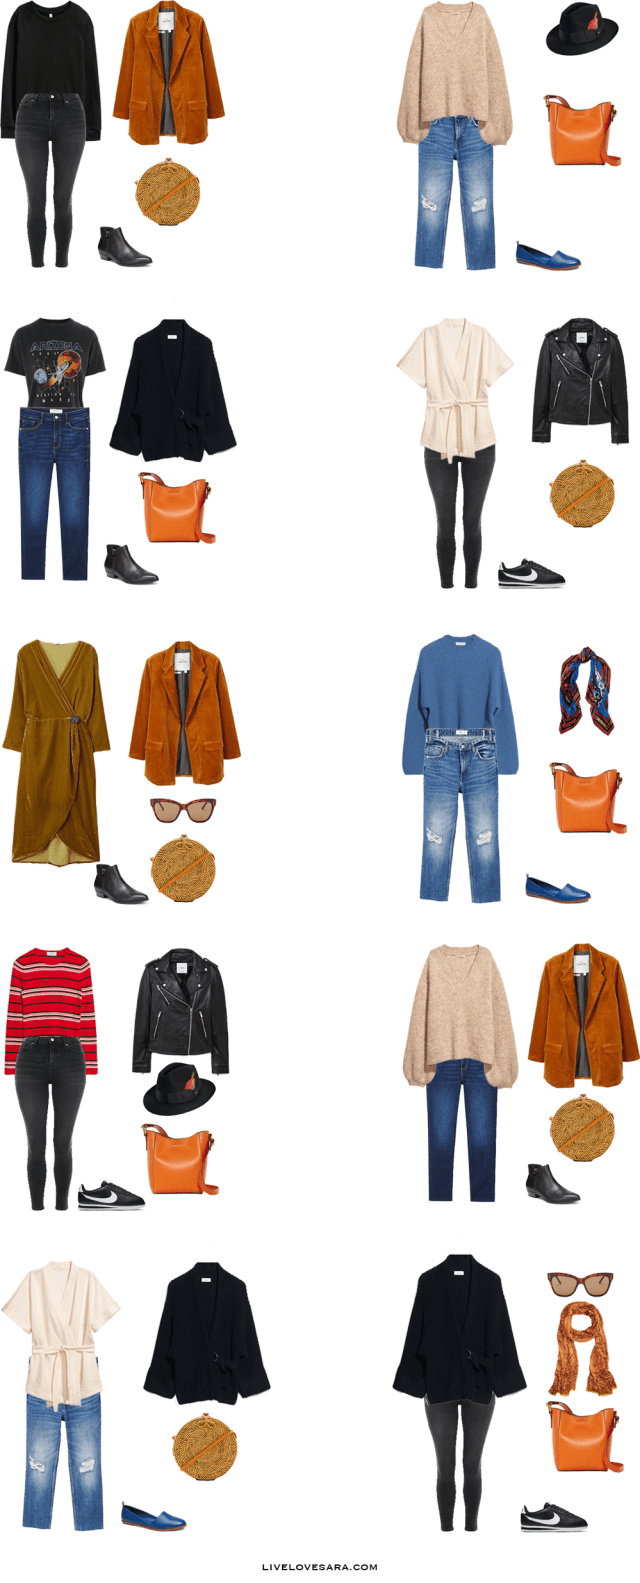 What to Pack for Amsterdam, Netherlands Outfit Options 11-20 | Packing Light | Packing List | Travel Light | Travel Wardrobe | Travel l Capsule | Capsule | Capsule Wardrobe | Travel | Travel tips | What to Pack | Amsterdam | What to Wear | Livelovesara